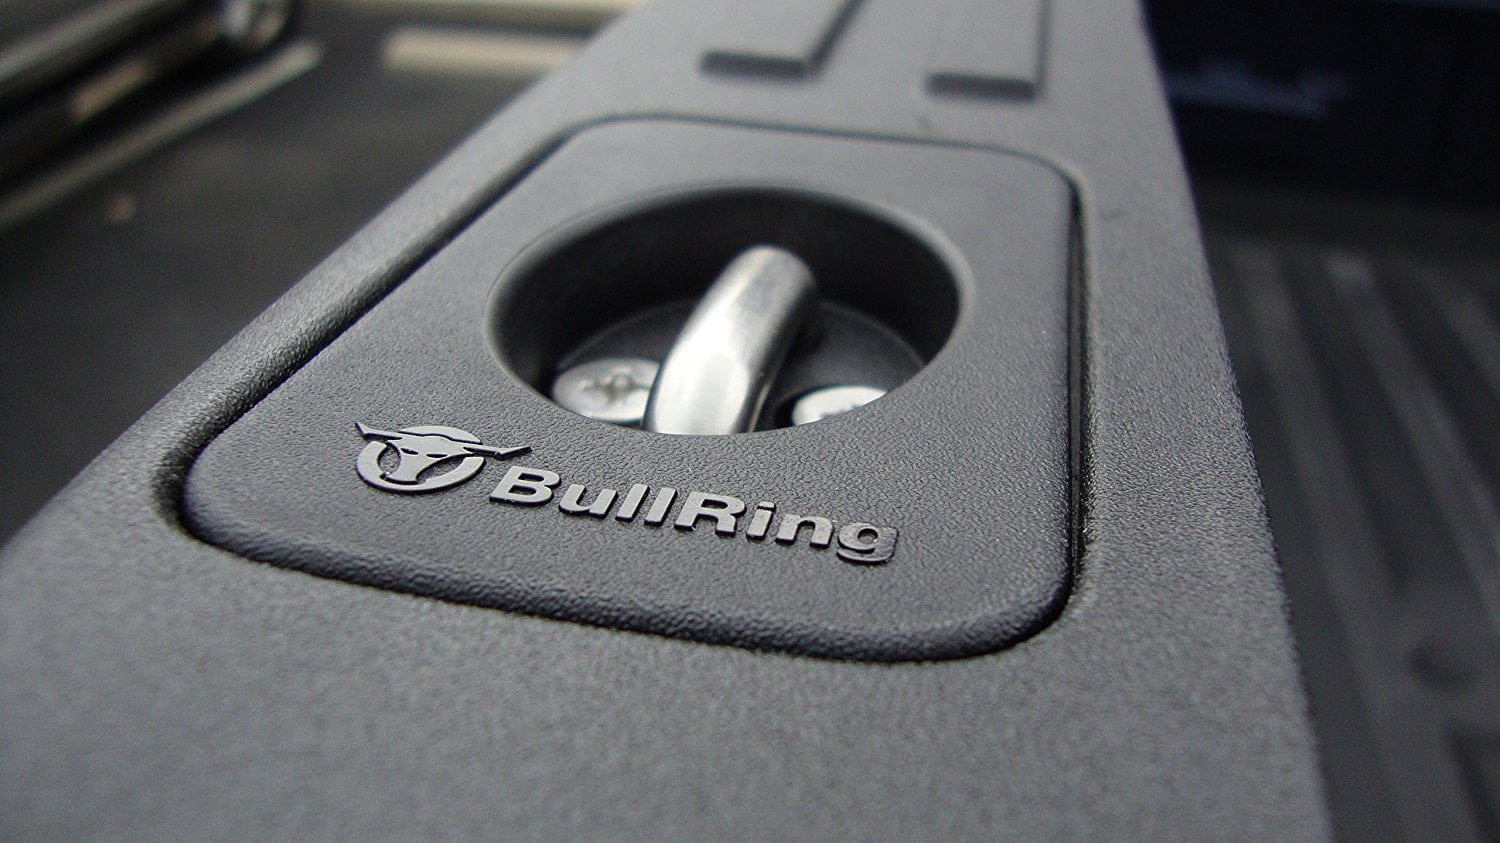 Bull Ring 4035 tie down installed